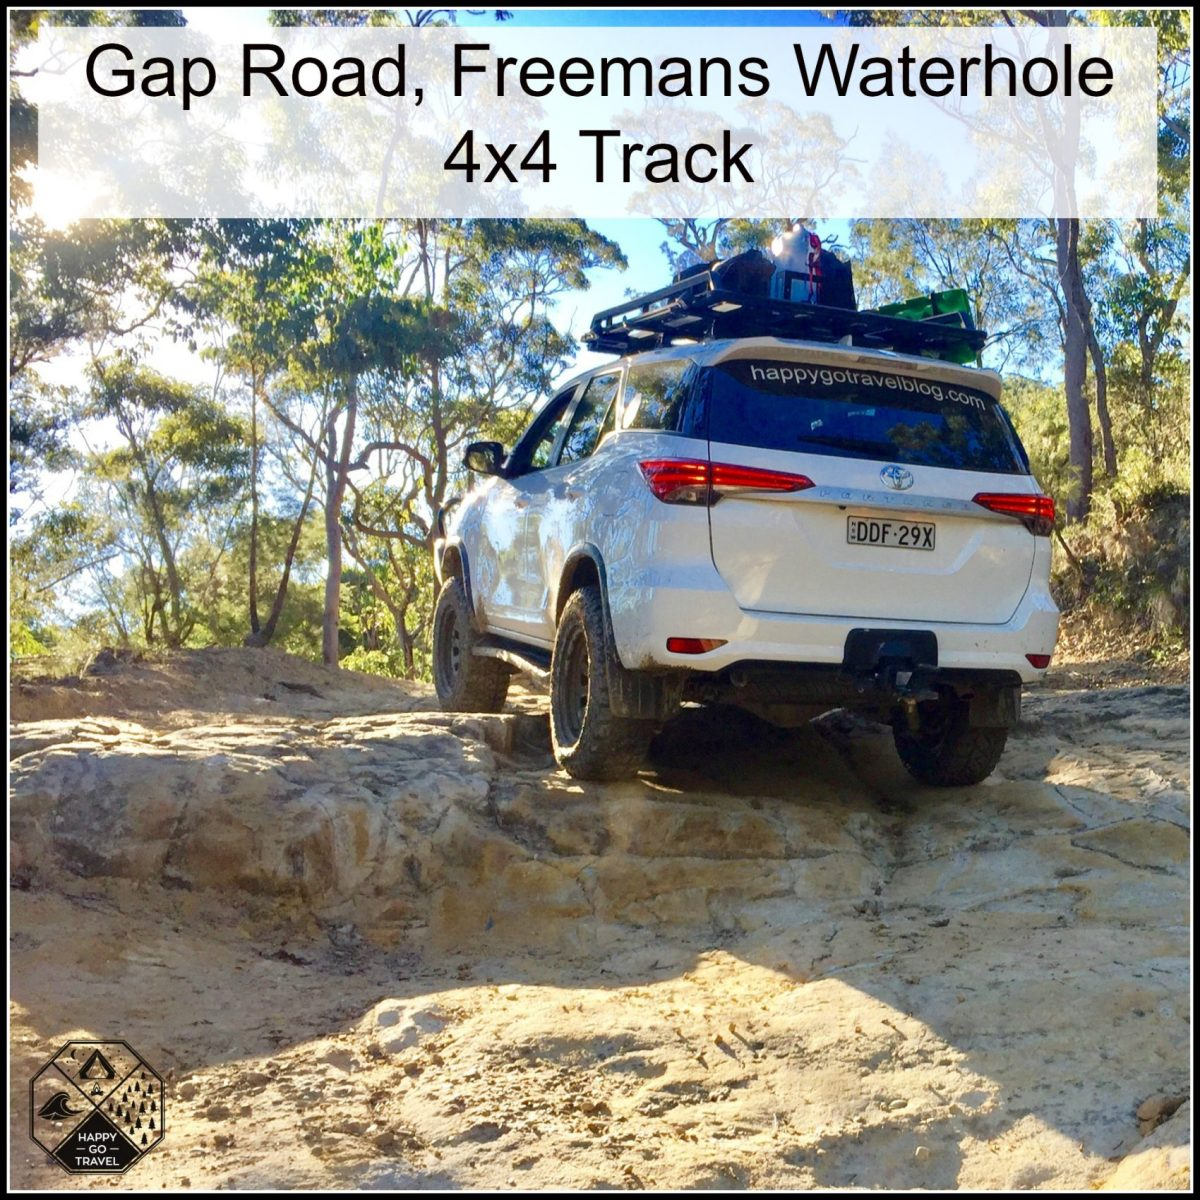 Gap Rd Freemans Waterhole 4x4 Track